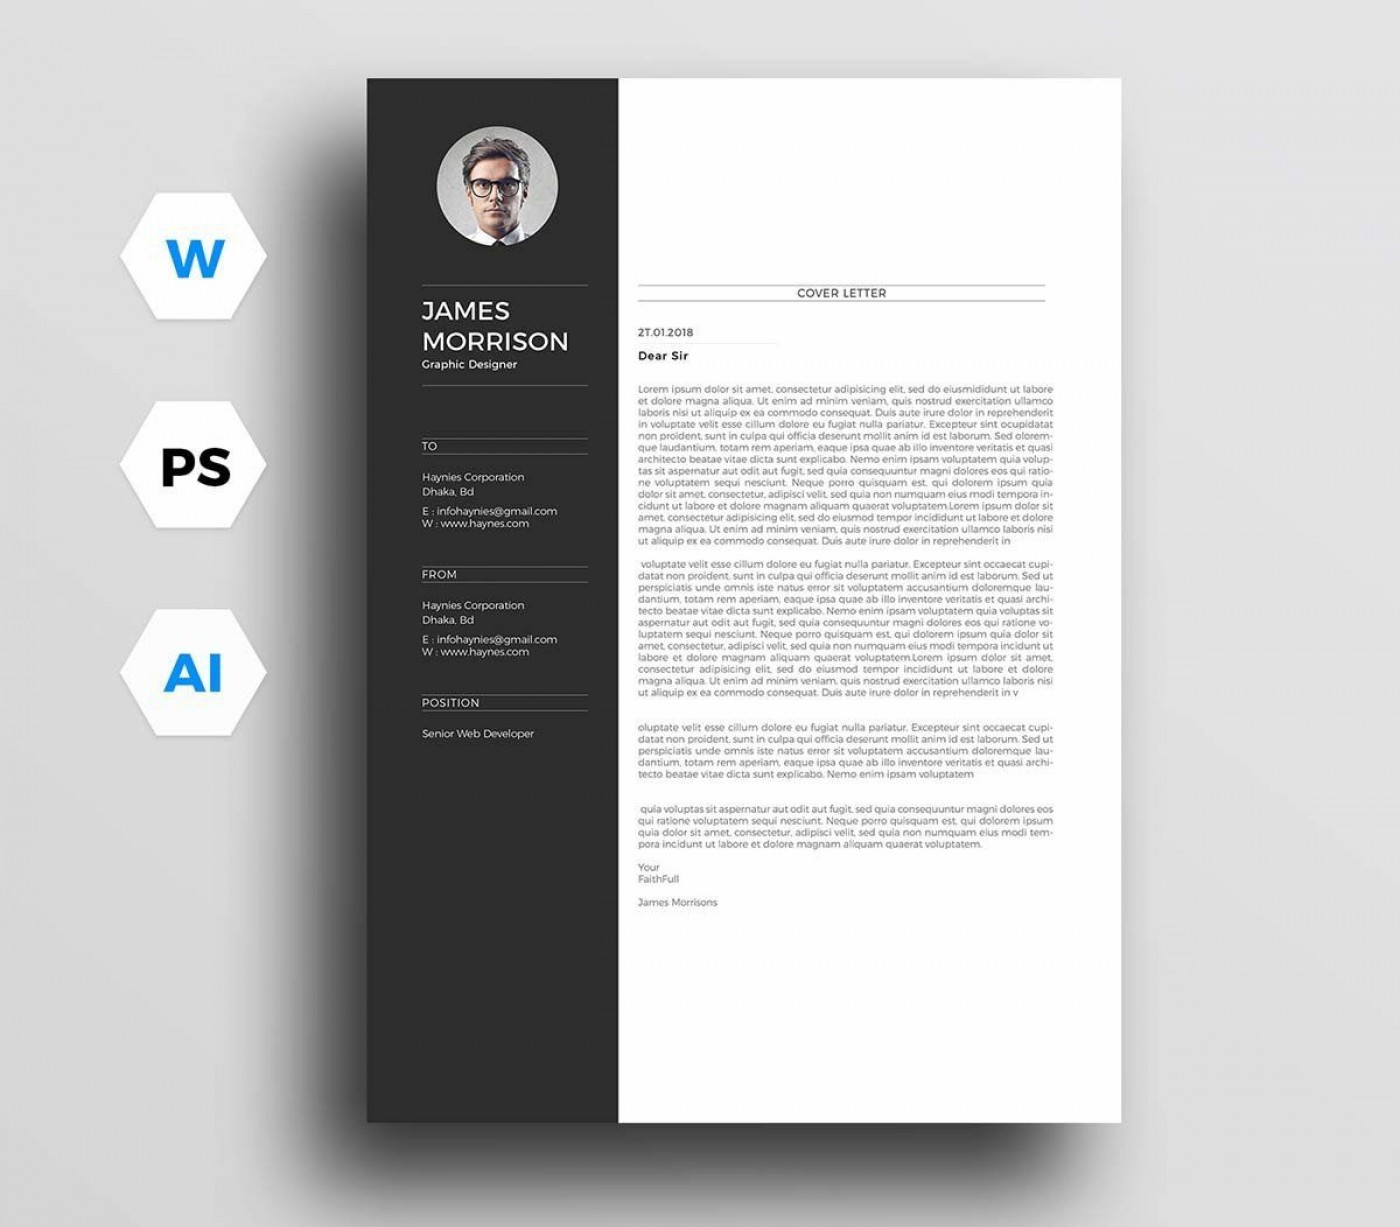 004 Awesome Resume Cover Letter Template Free Highest Clarity  Simple Online Microsoft1400